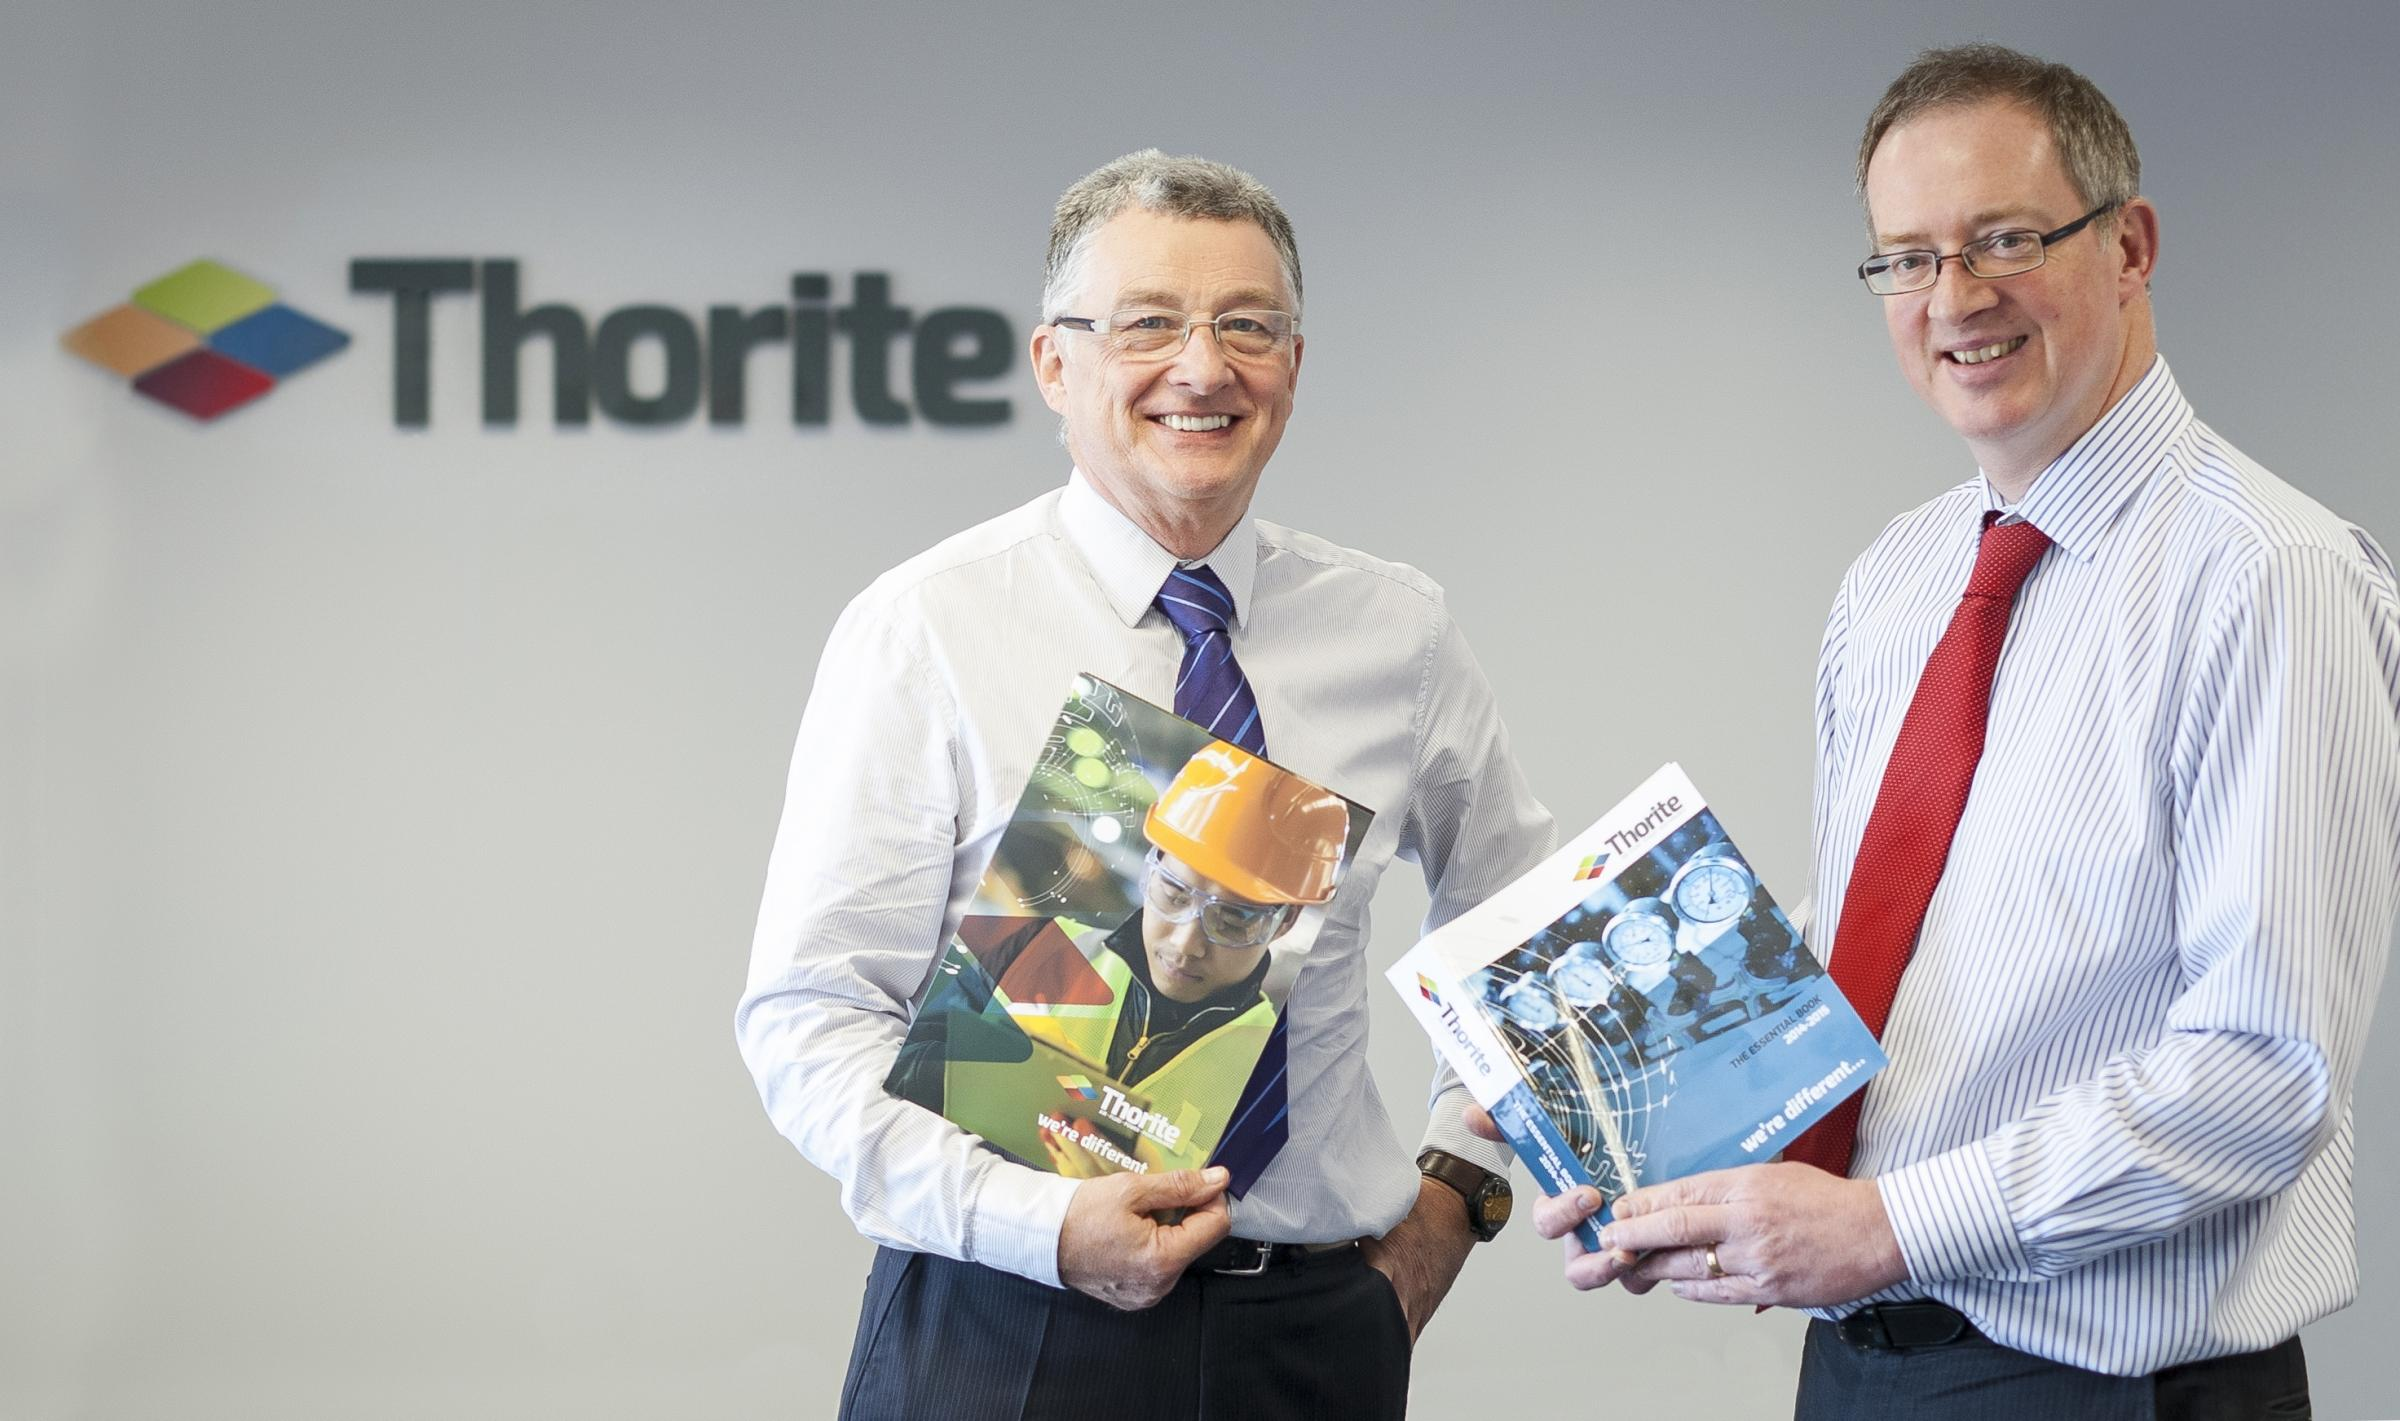 Ross Gowler, Thorite director of marketing and engineering services, and Stephen Wright, managing director, with some of the new-look promotional material